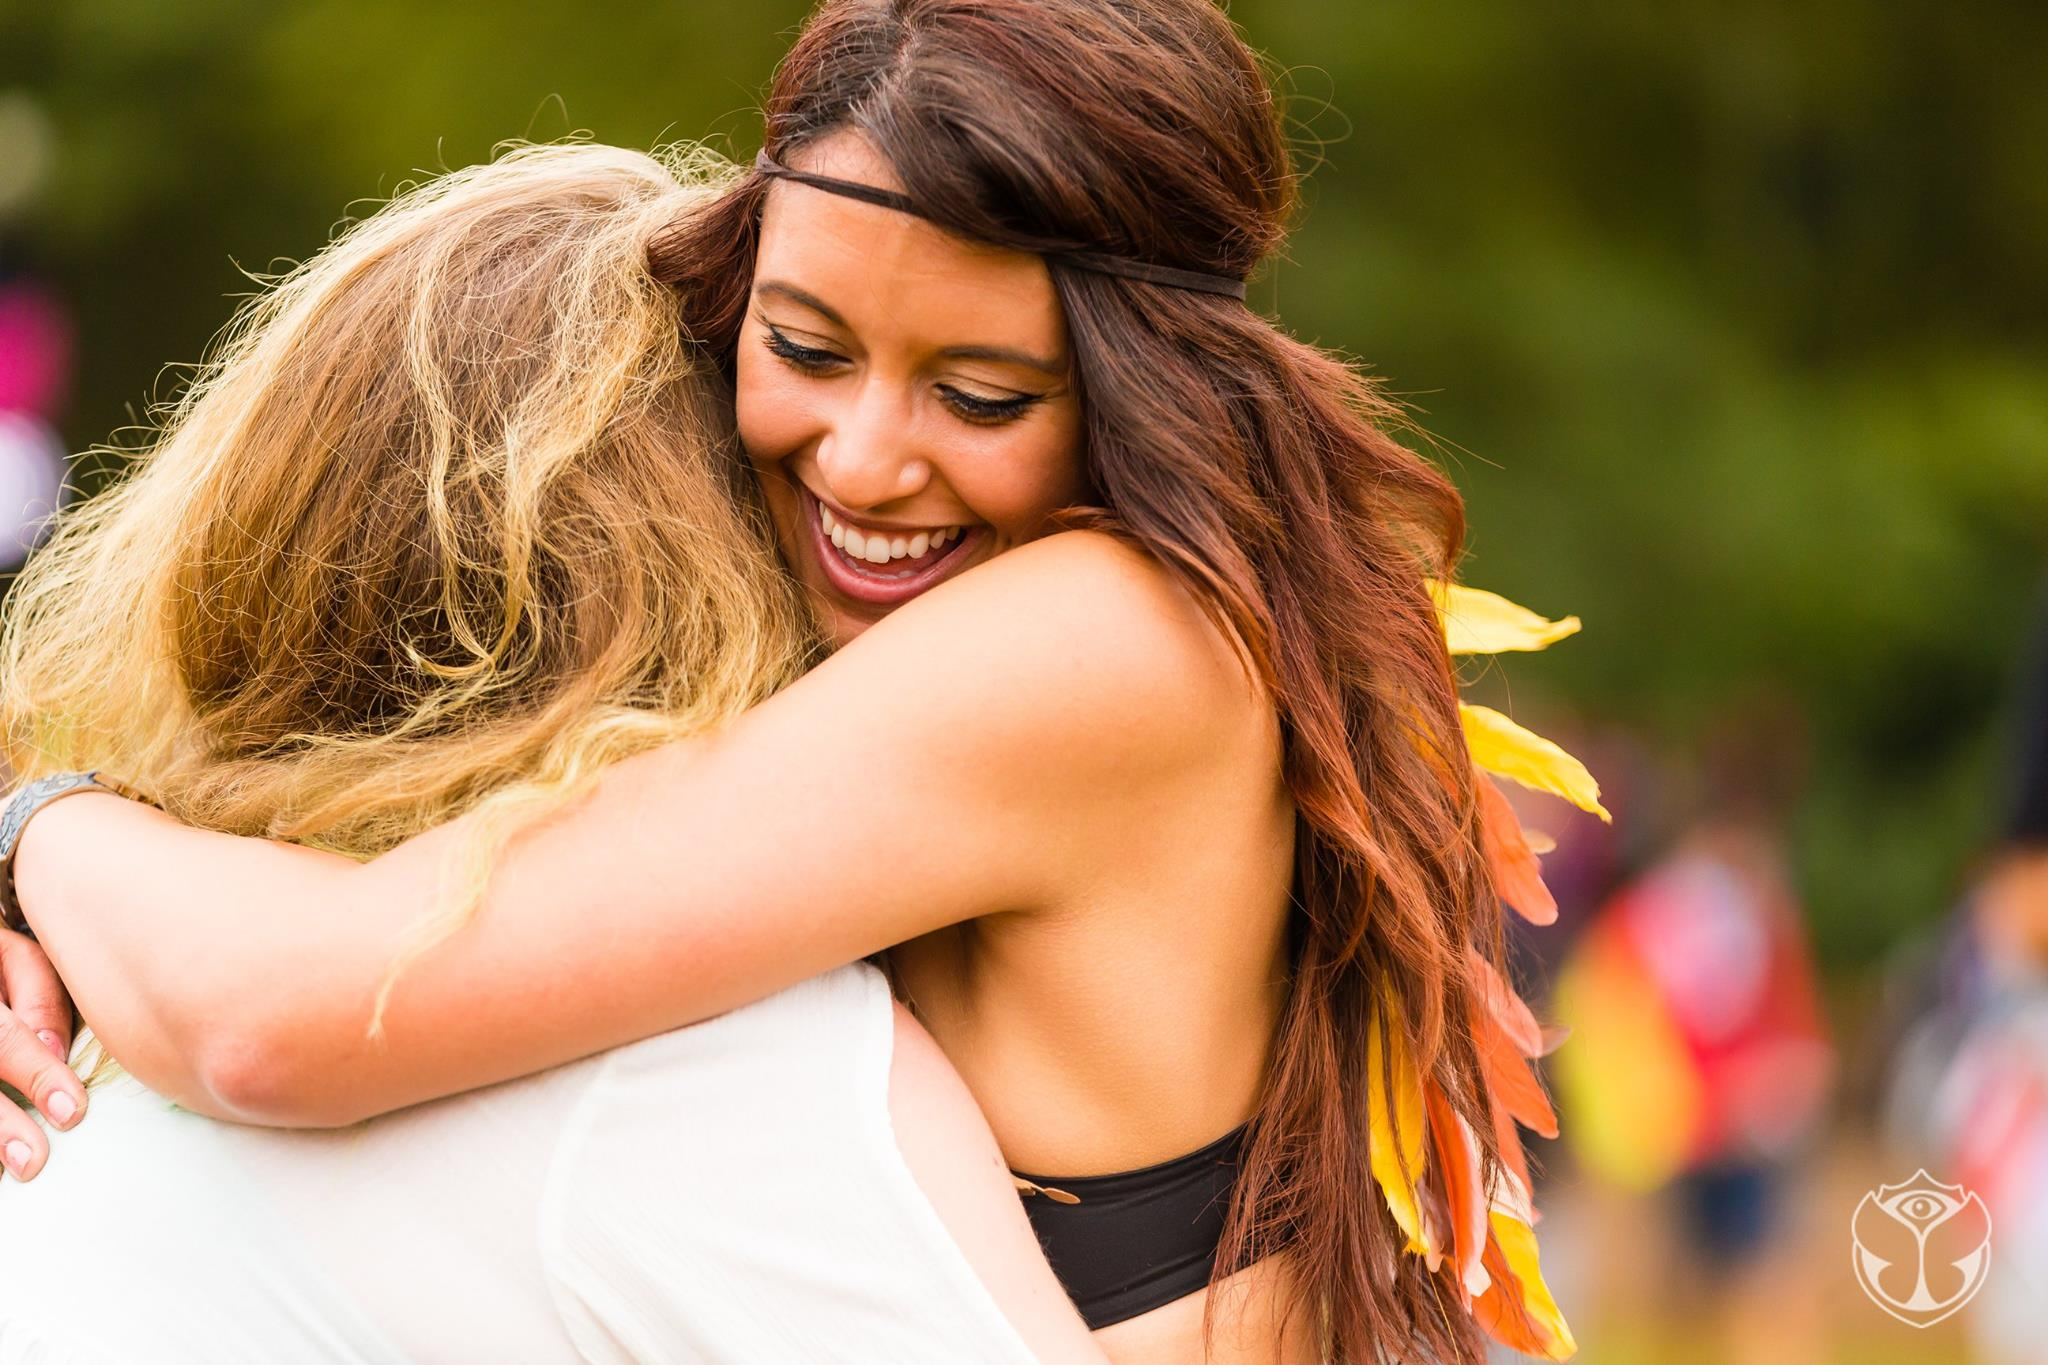 4 Ways To Meet New People At Festivals